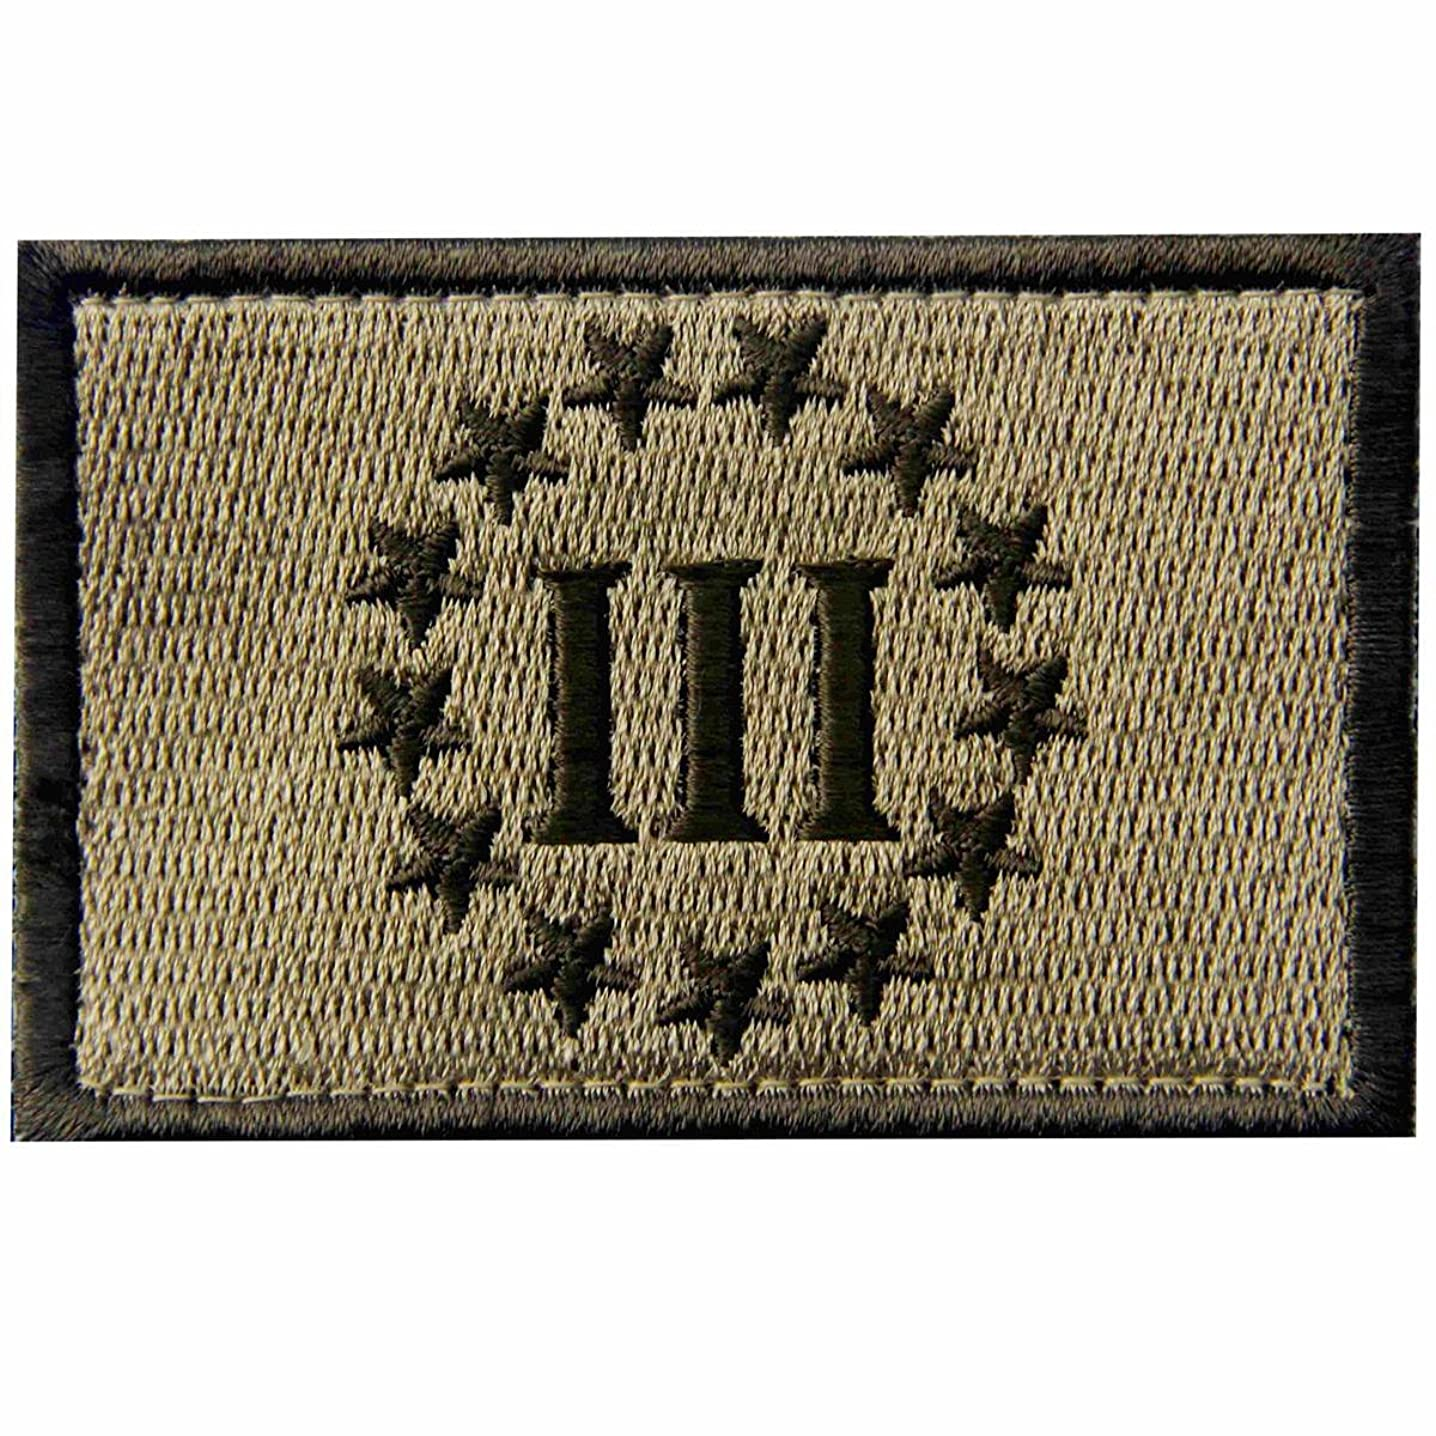 Three Percenter Tactical Embroidered Morale Applique Fastener Hook & Loop Patch - Multitan